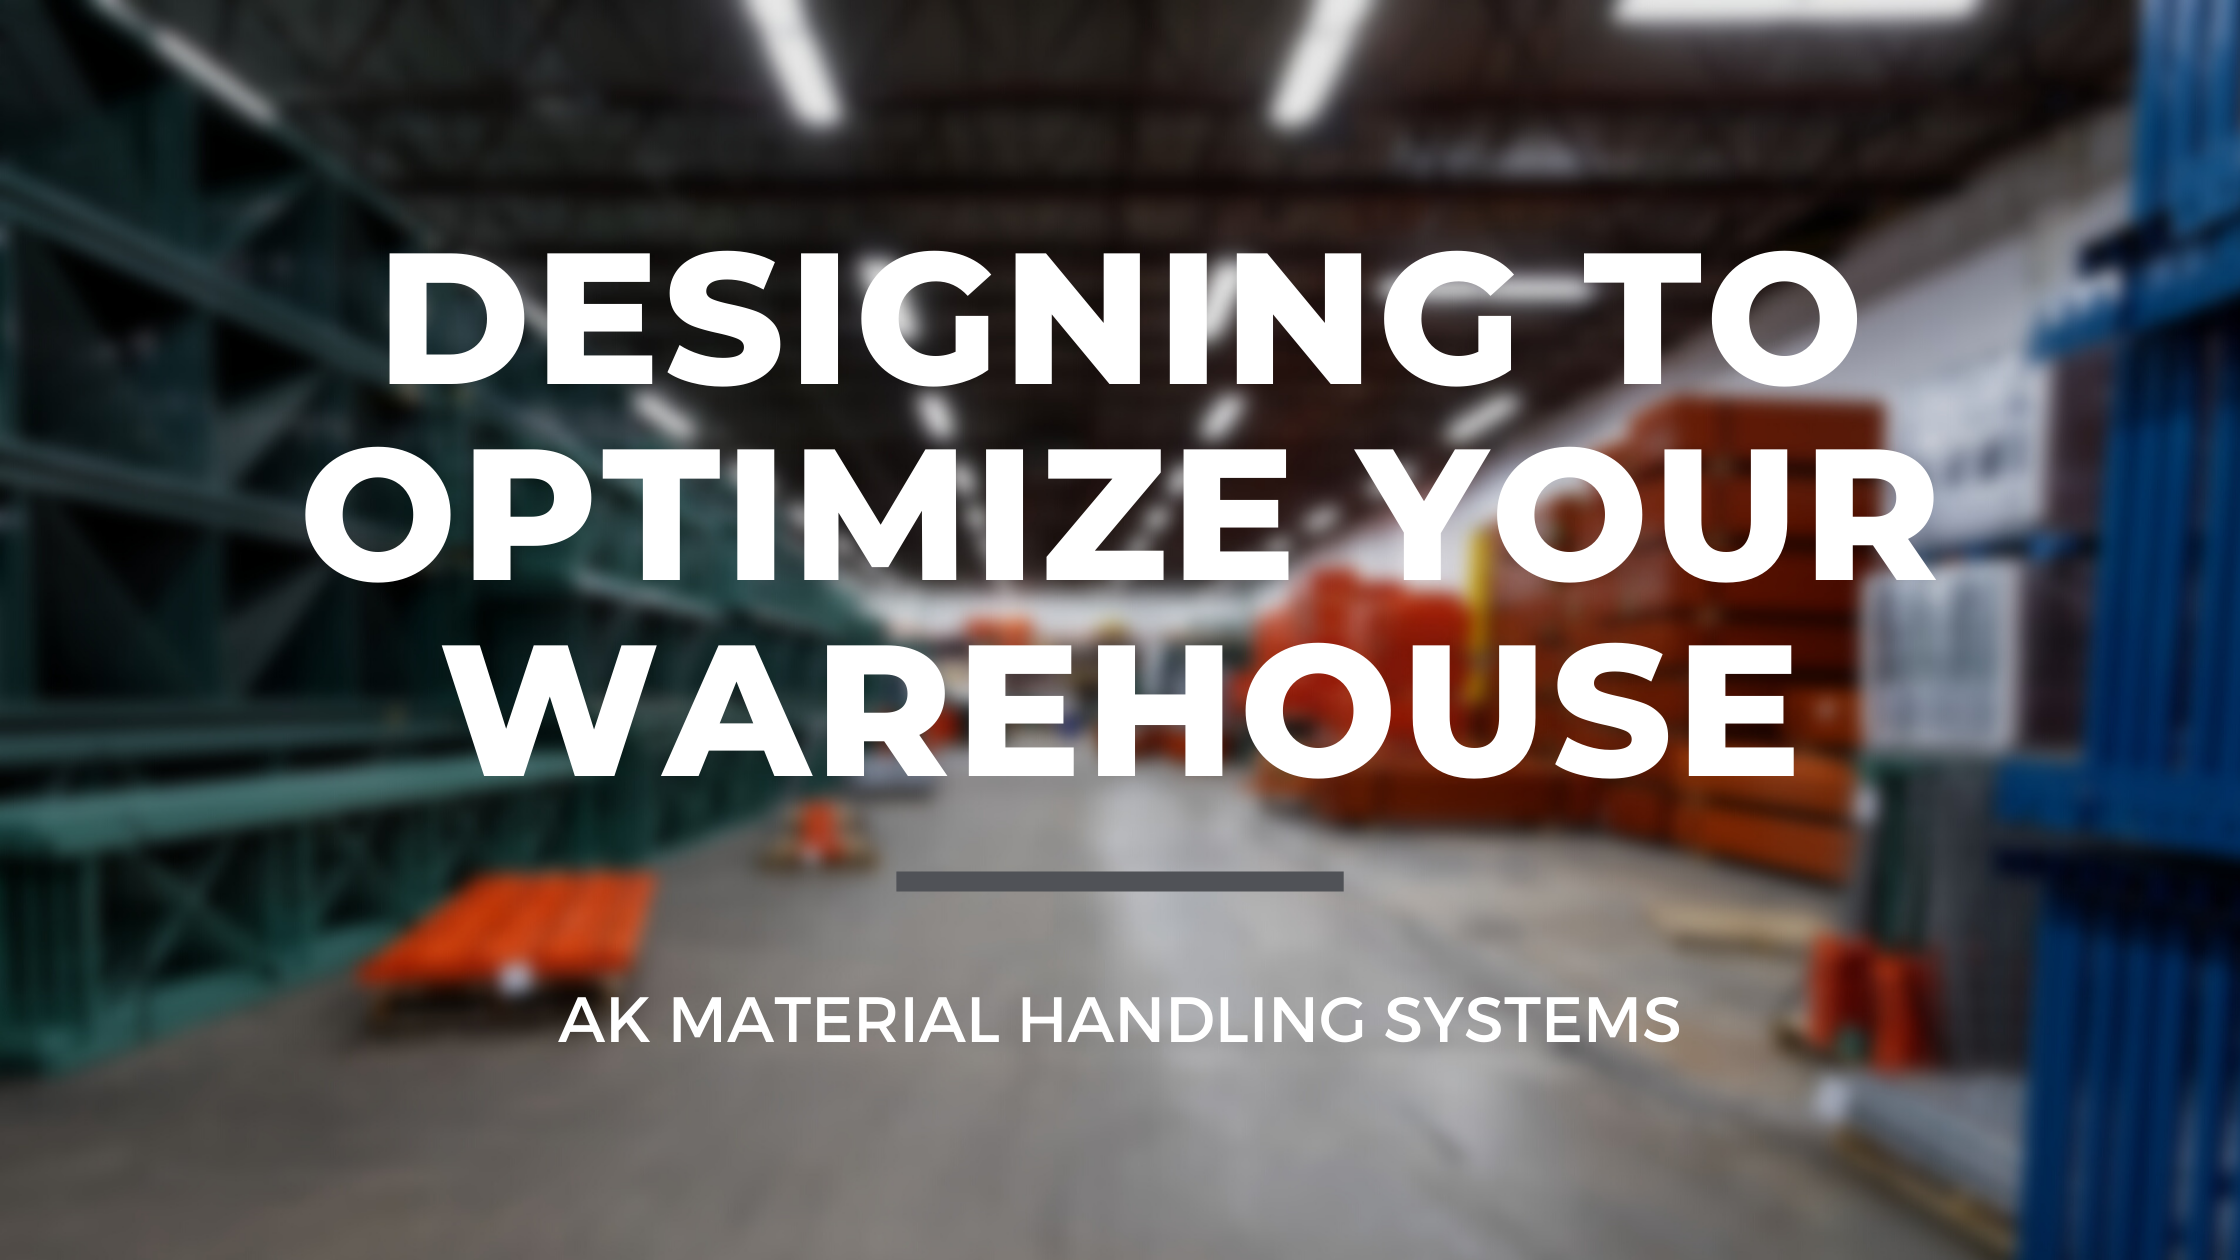 Designing to optimize your warehouse